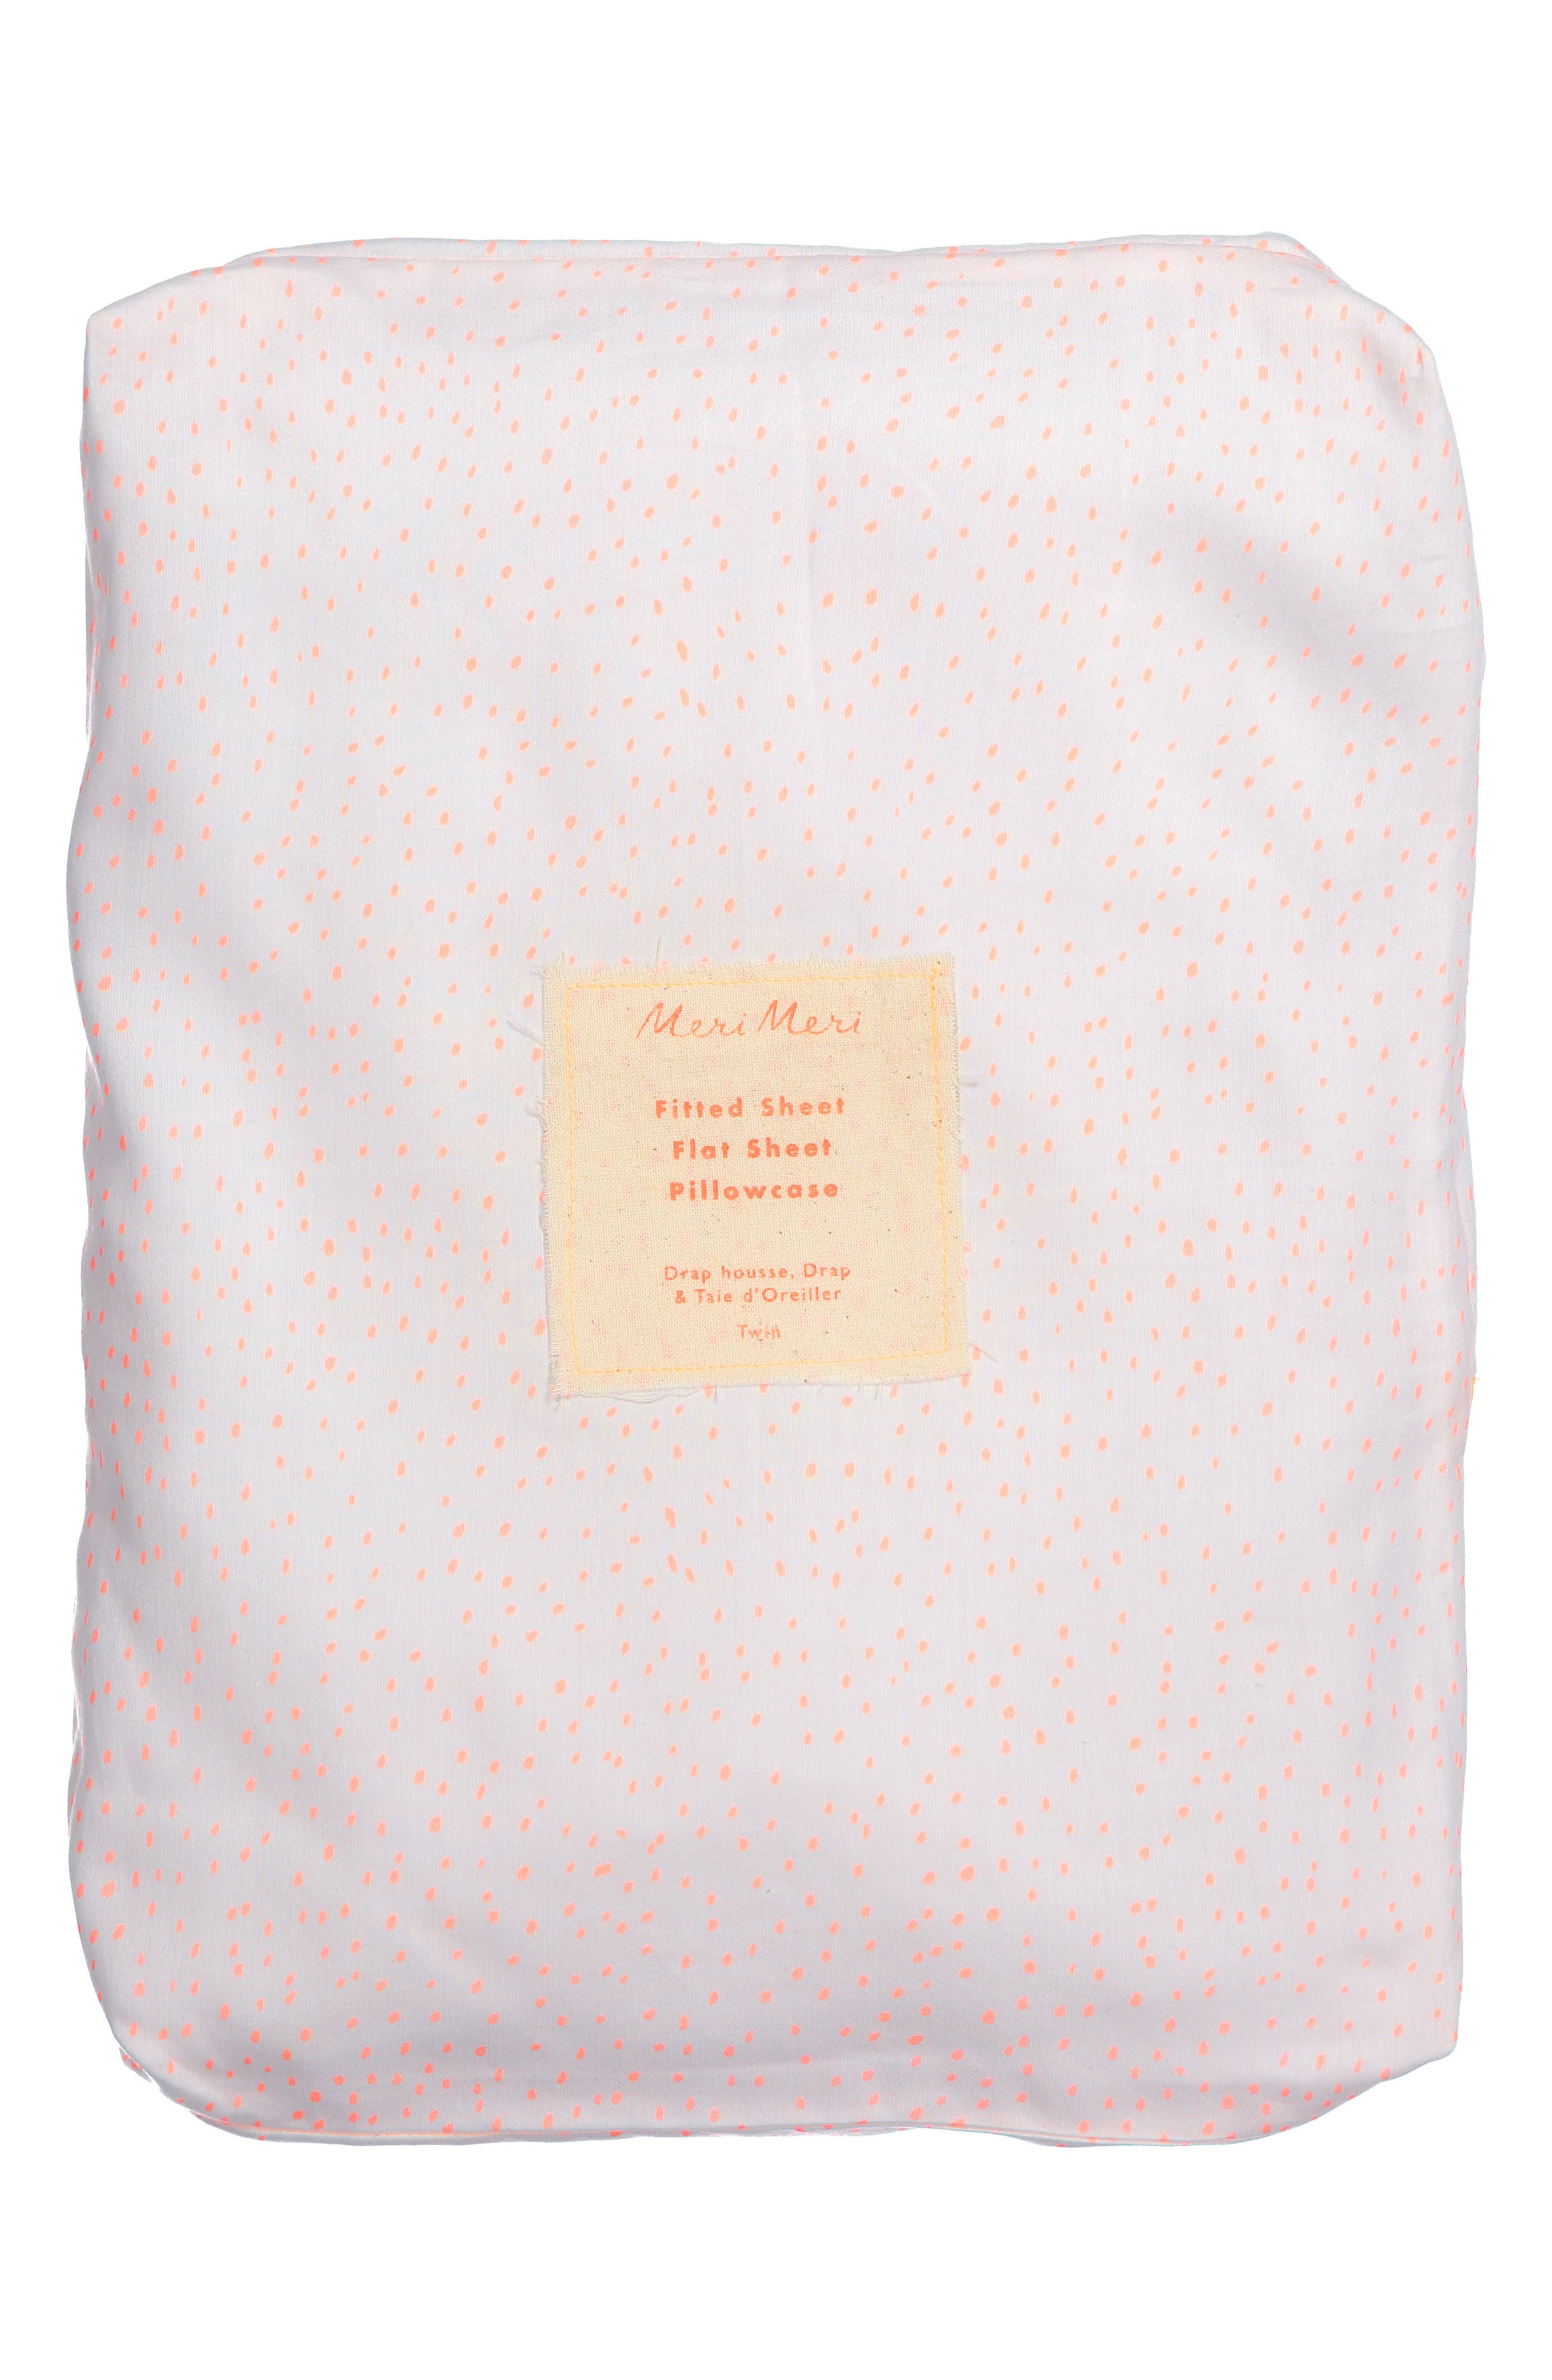 Twin Sheet & Pillowcase Set,                             Alternate thumbnail 3, color,                             Coral